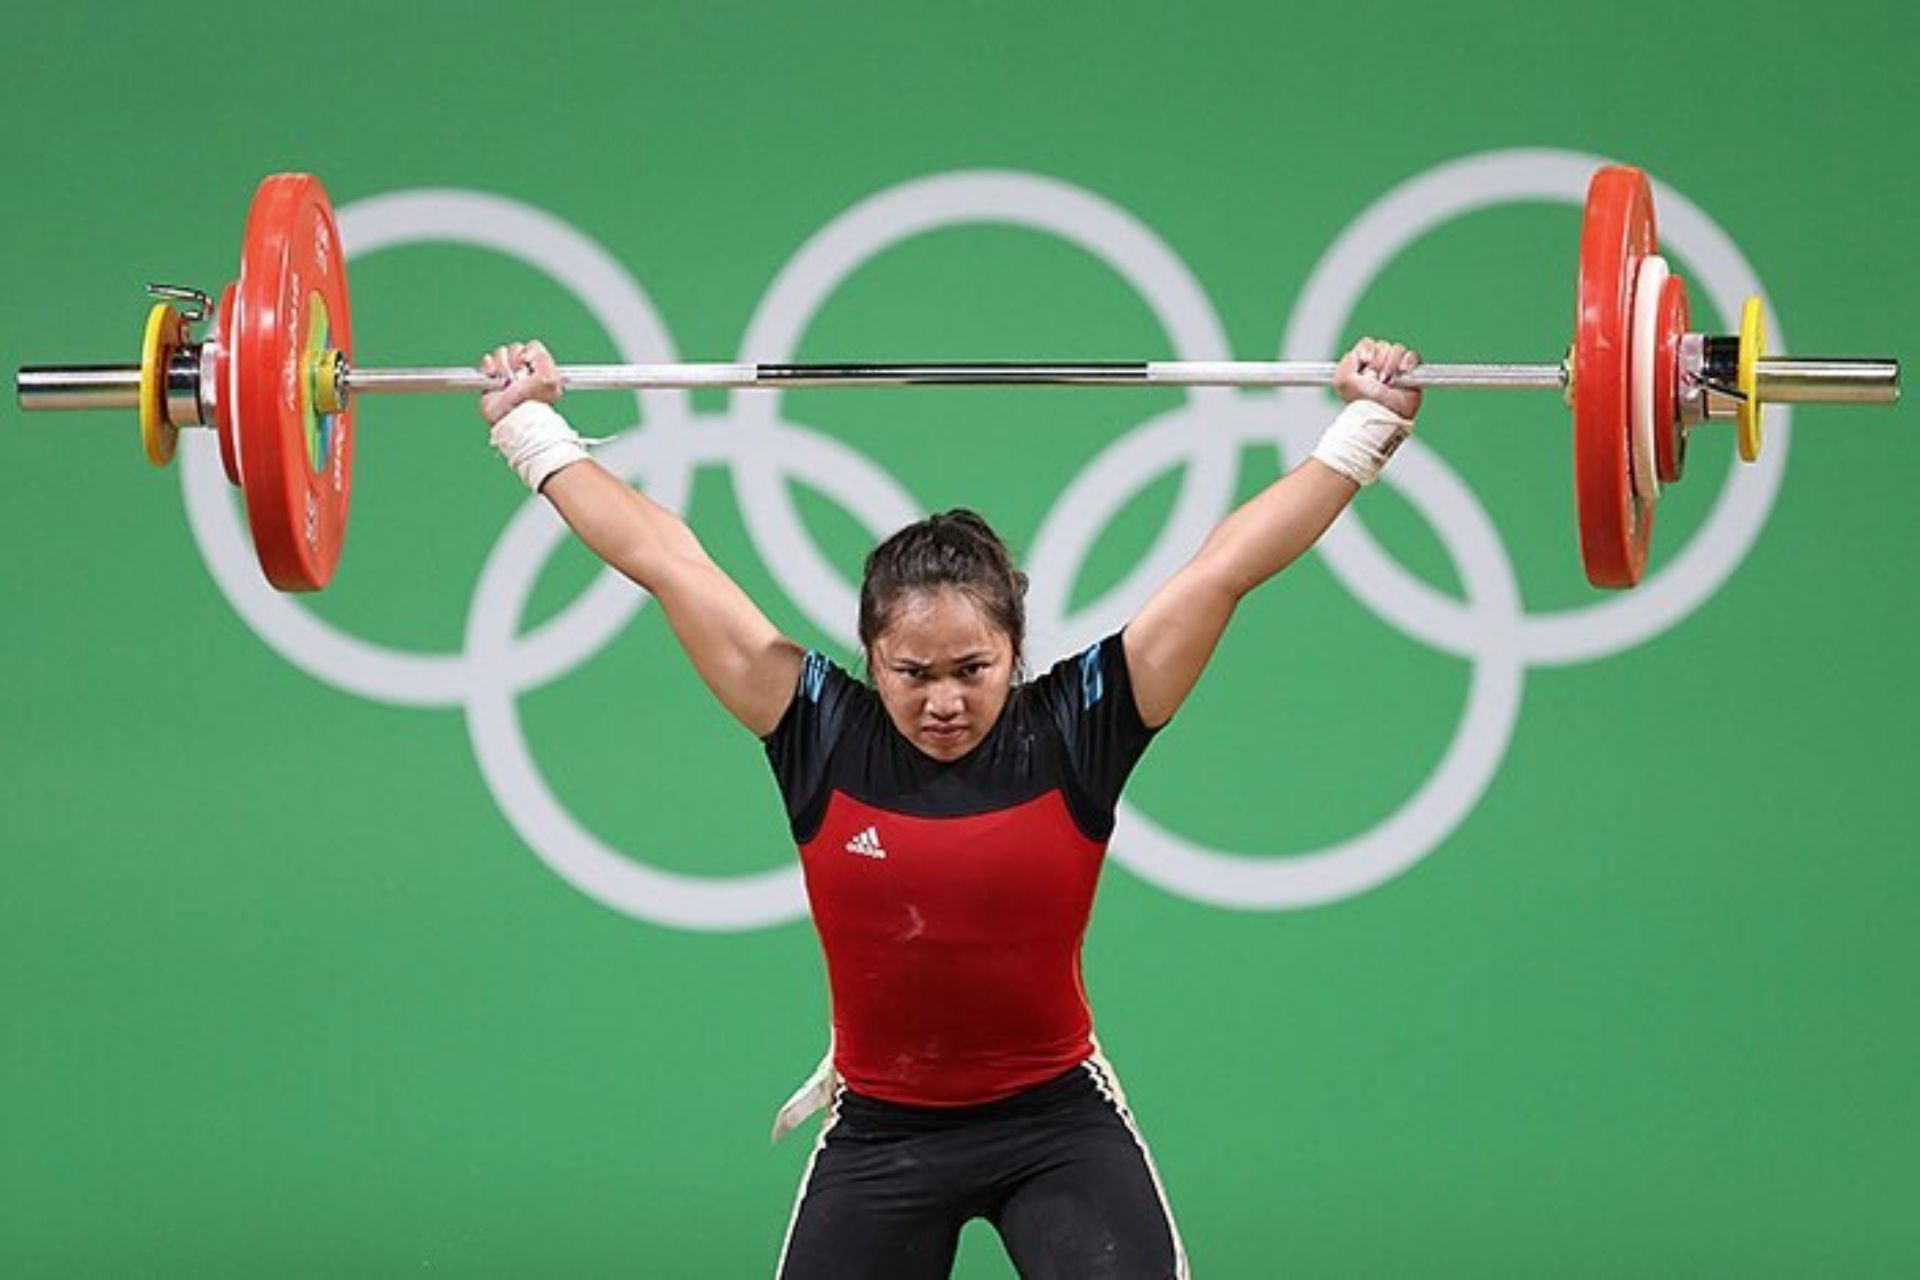 Olympian Hidilyn Diaz On How to Lift Like a Champ | Generation T